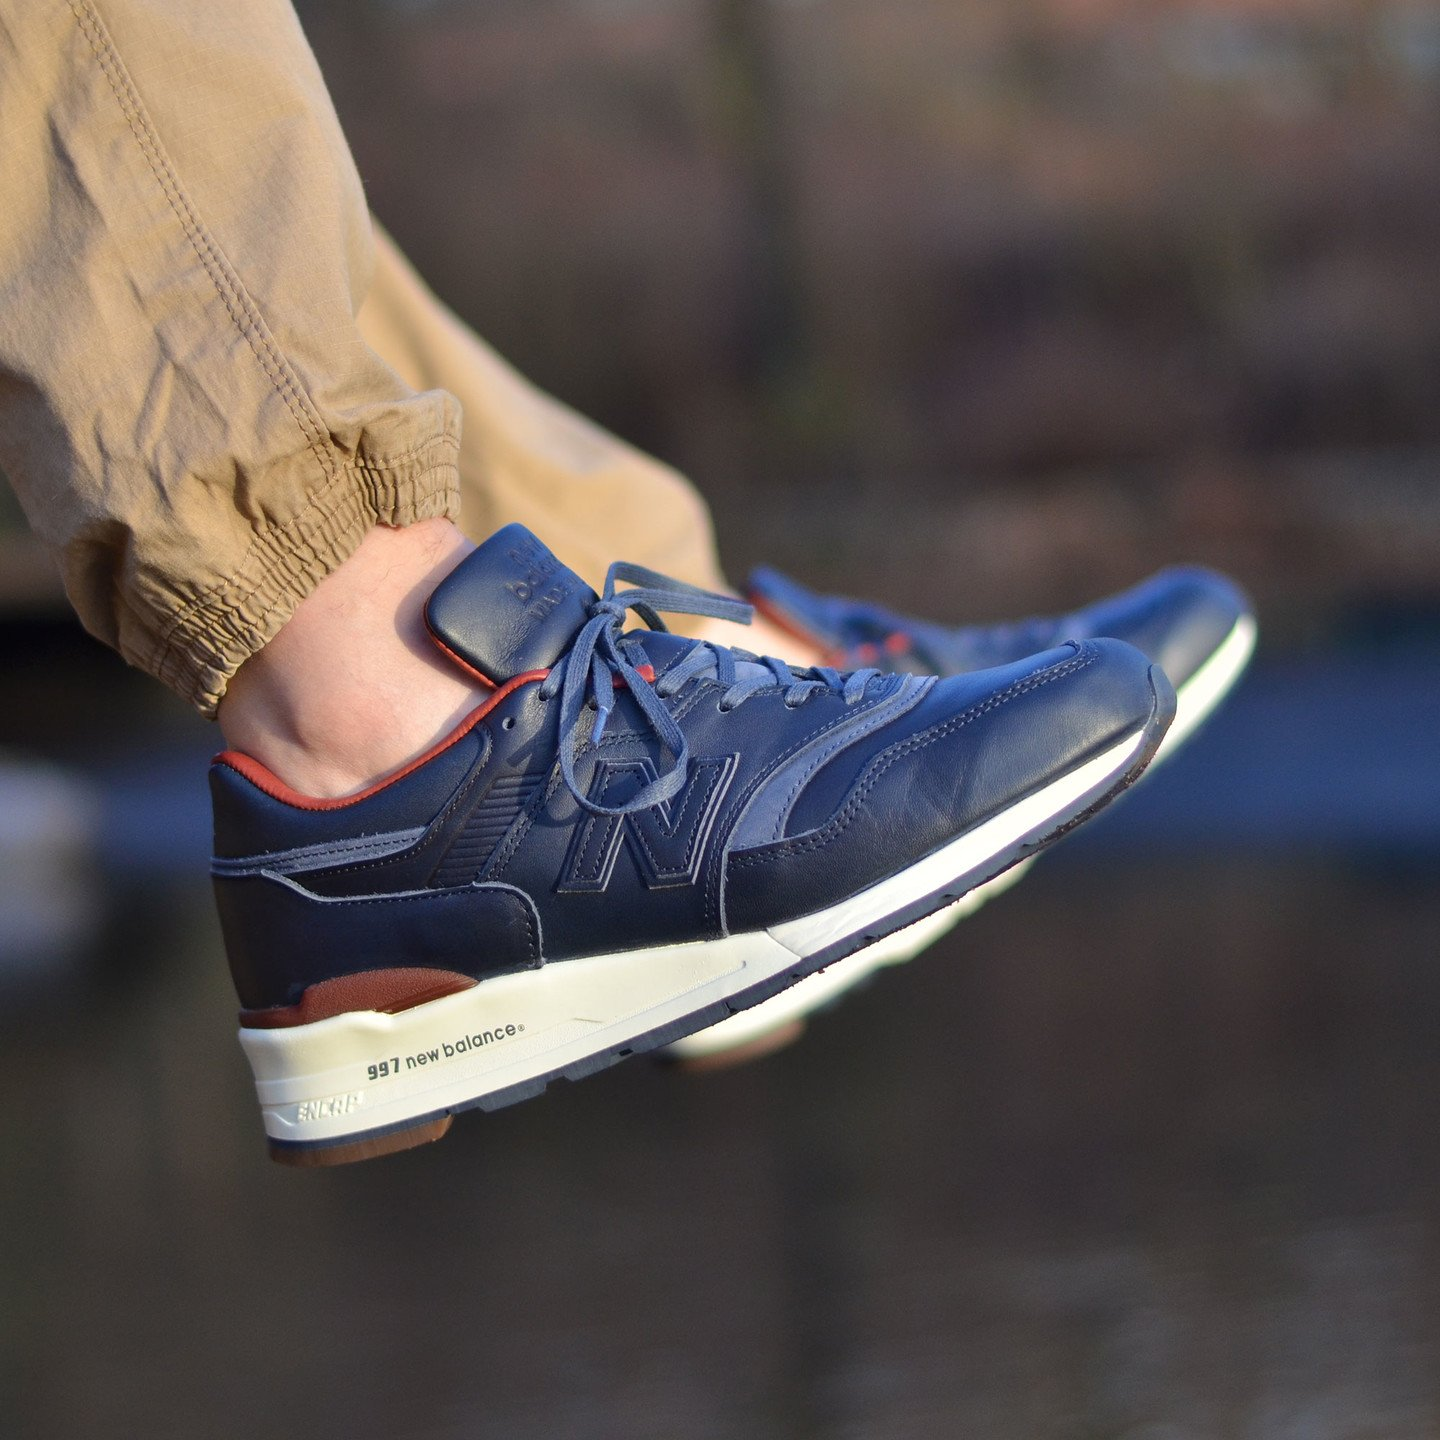 New Balance M997 Made in USA - Horween Leather Dark Blue / Burgundy M997BEXP-45.5